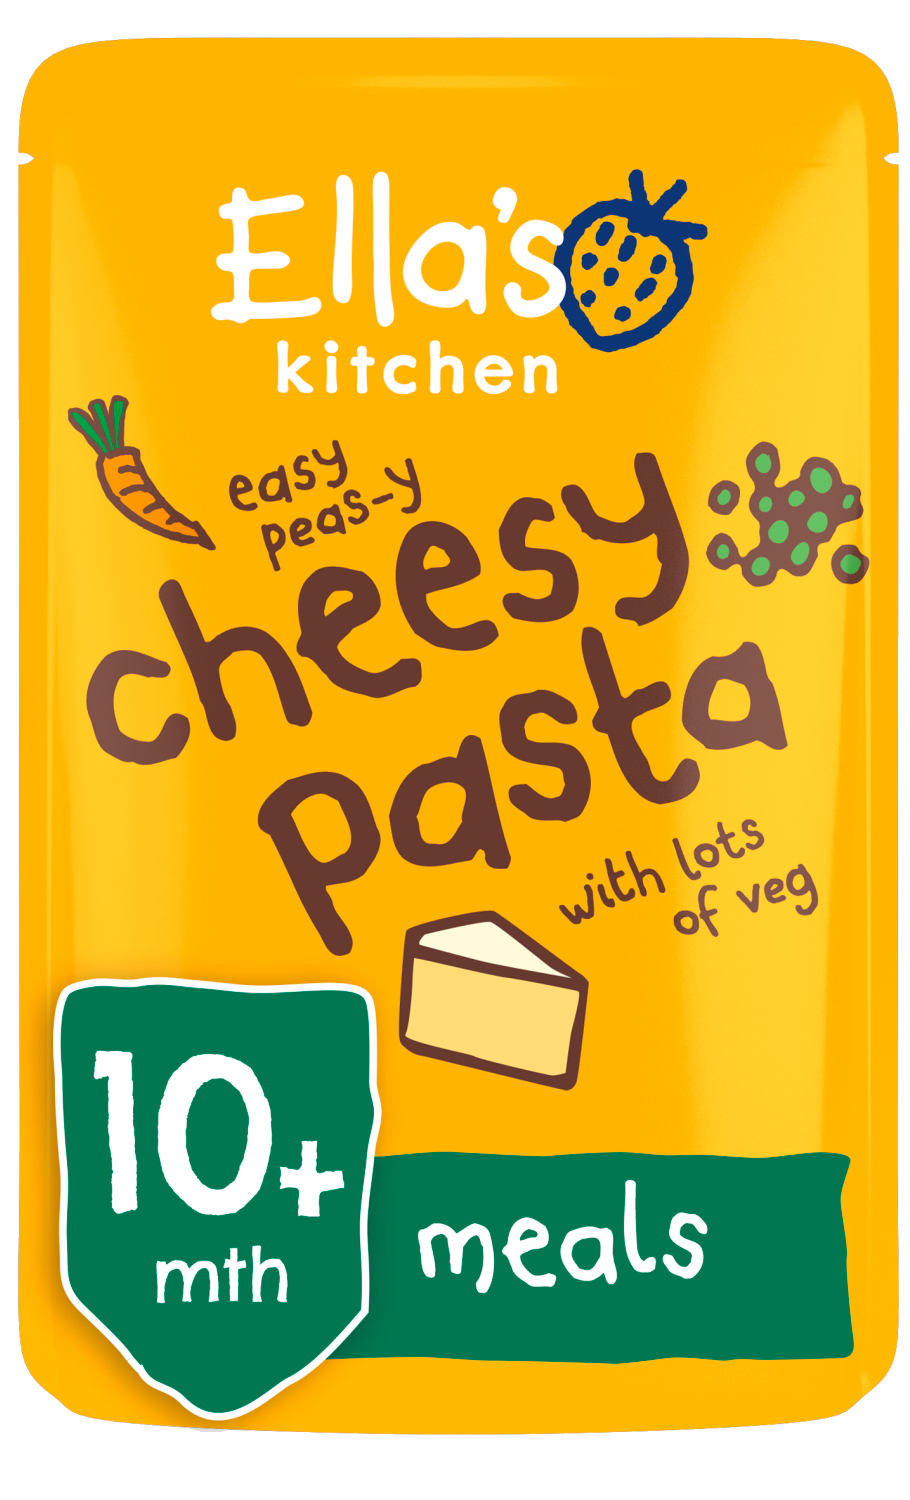 Ellas kitchen cheesy pasta veg pouch 10 months front of pack O